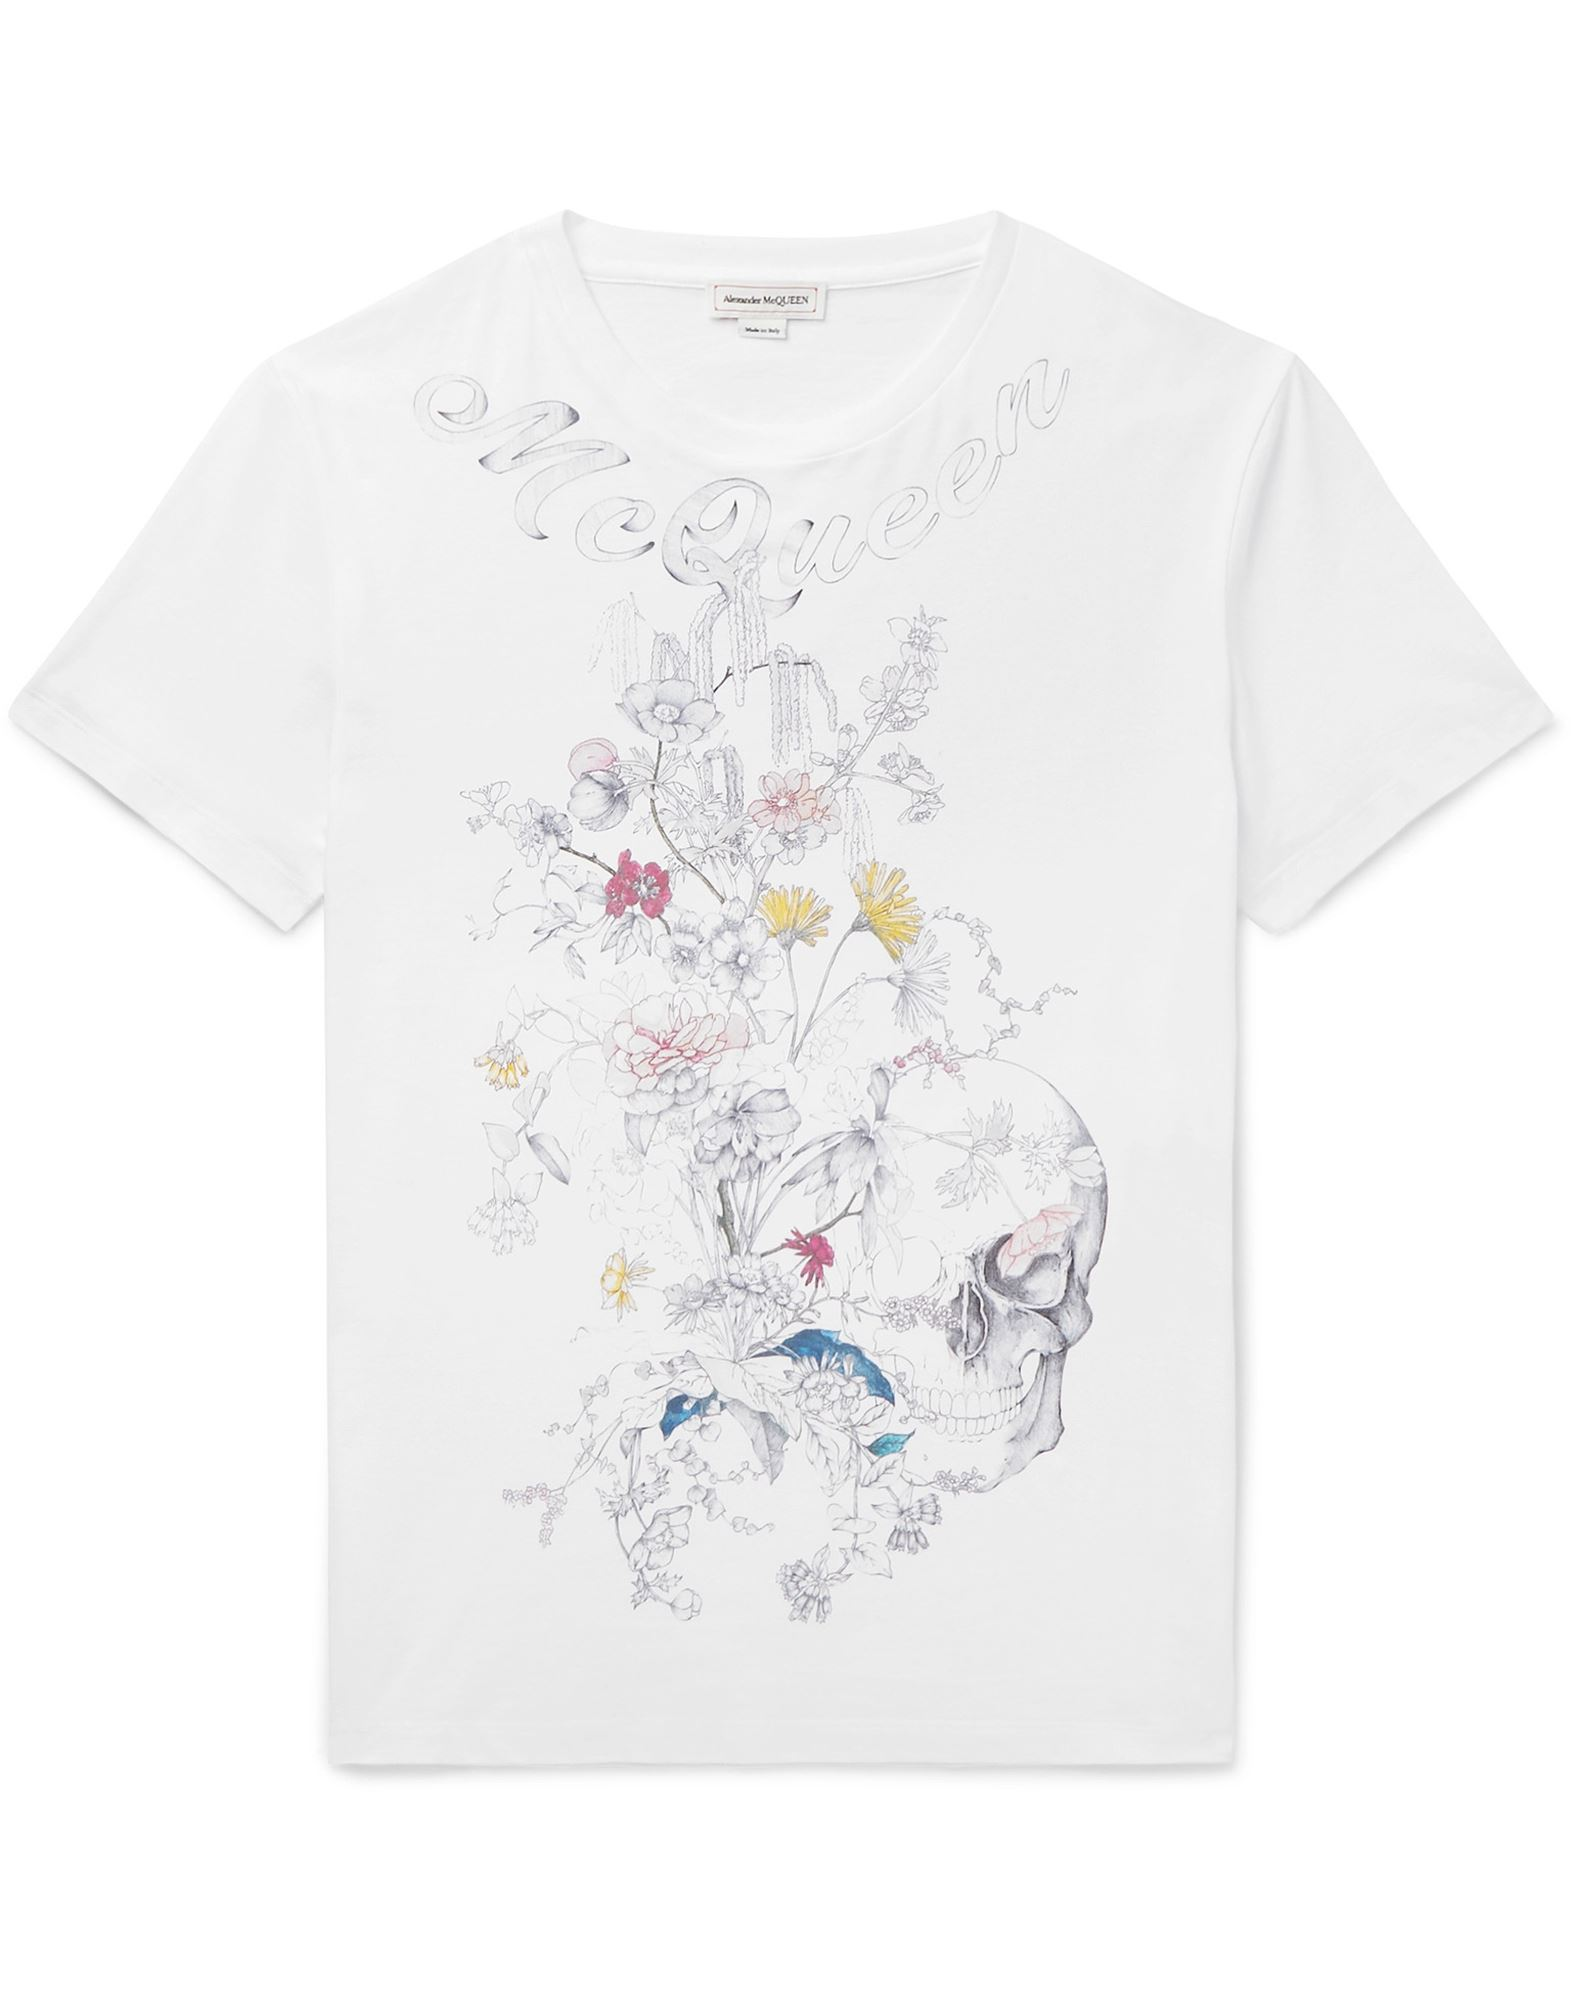 ALEXANDER MCQUEEN T-shirts. jersey, print, solid color, round collar, short sleeves, no pockets, large sized. 100% Cotton